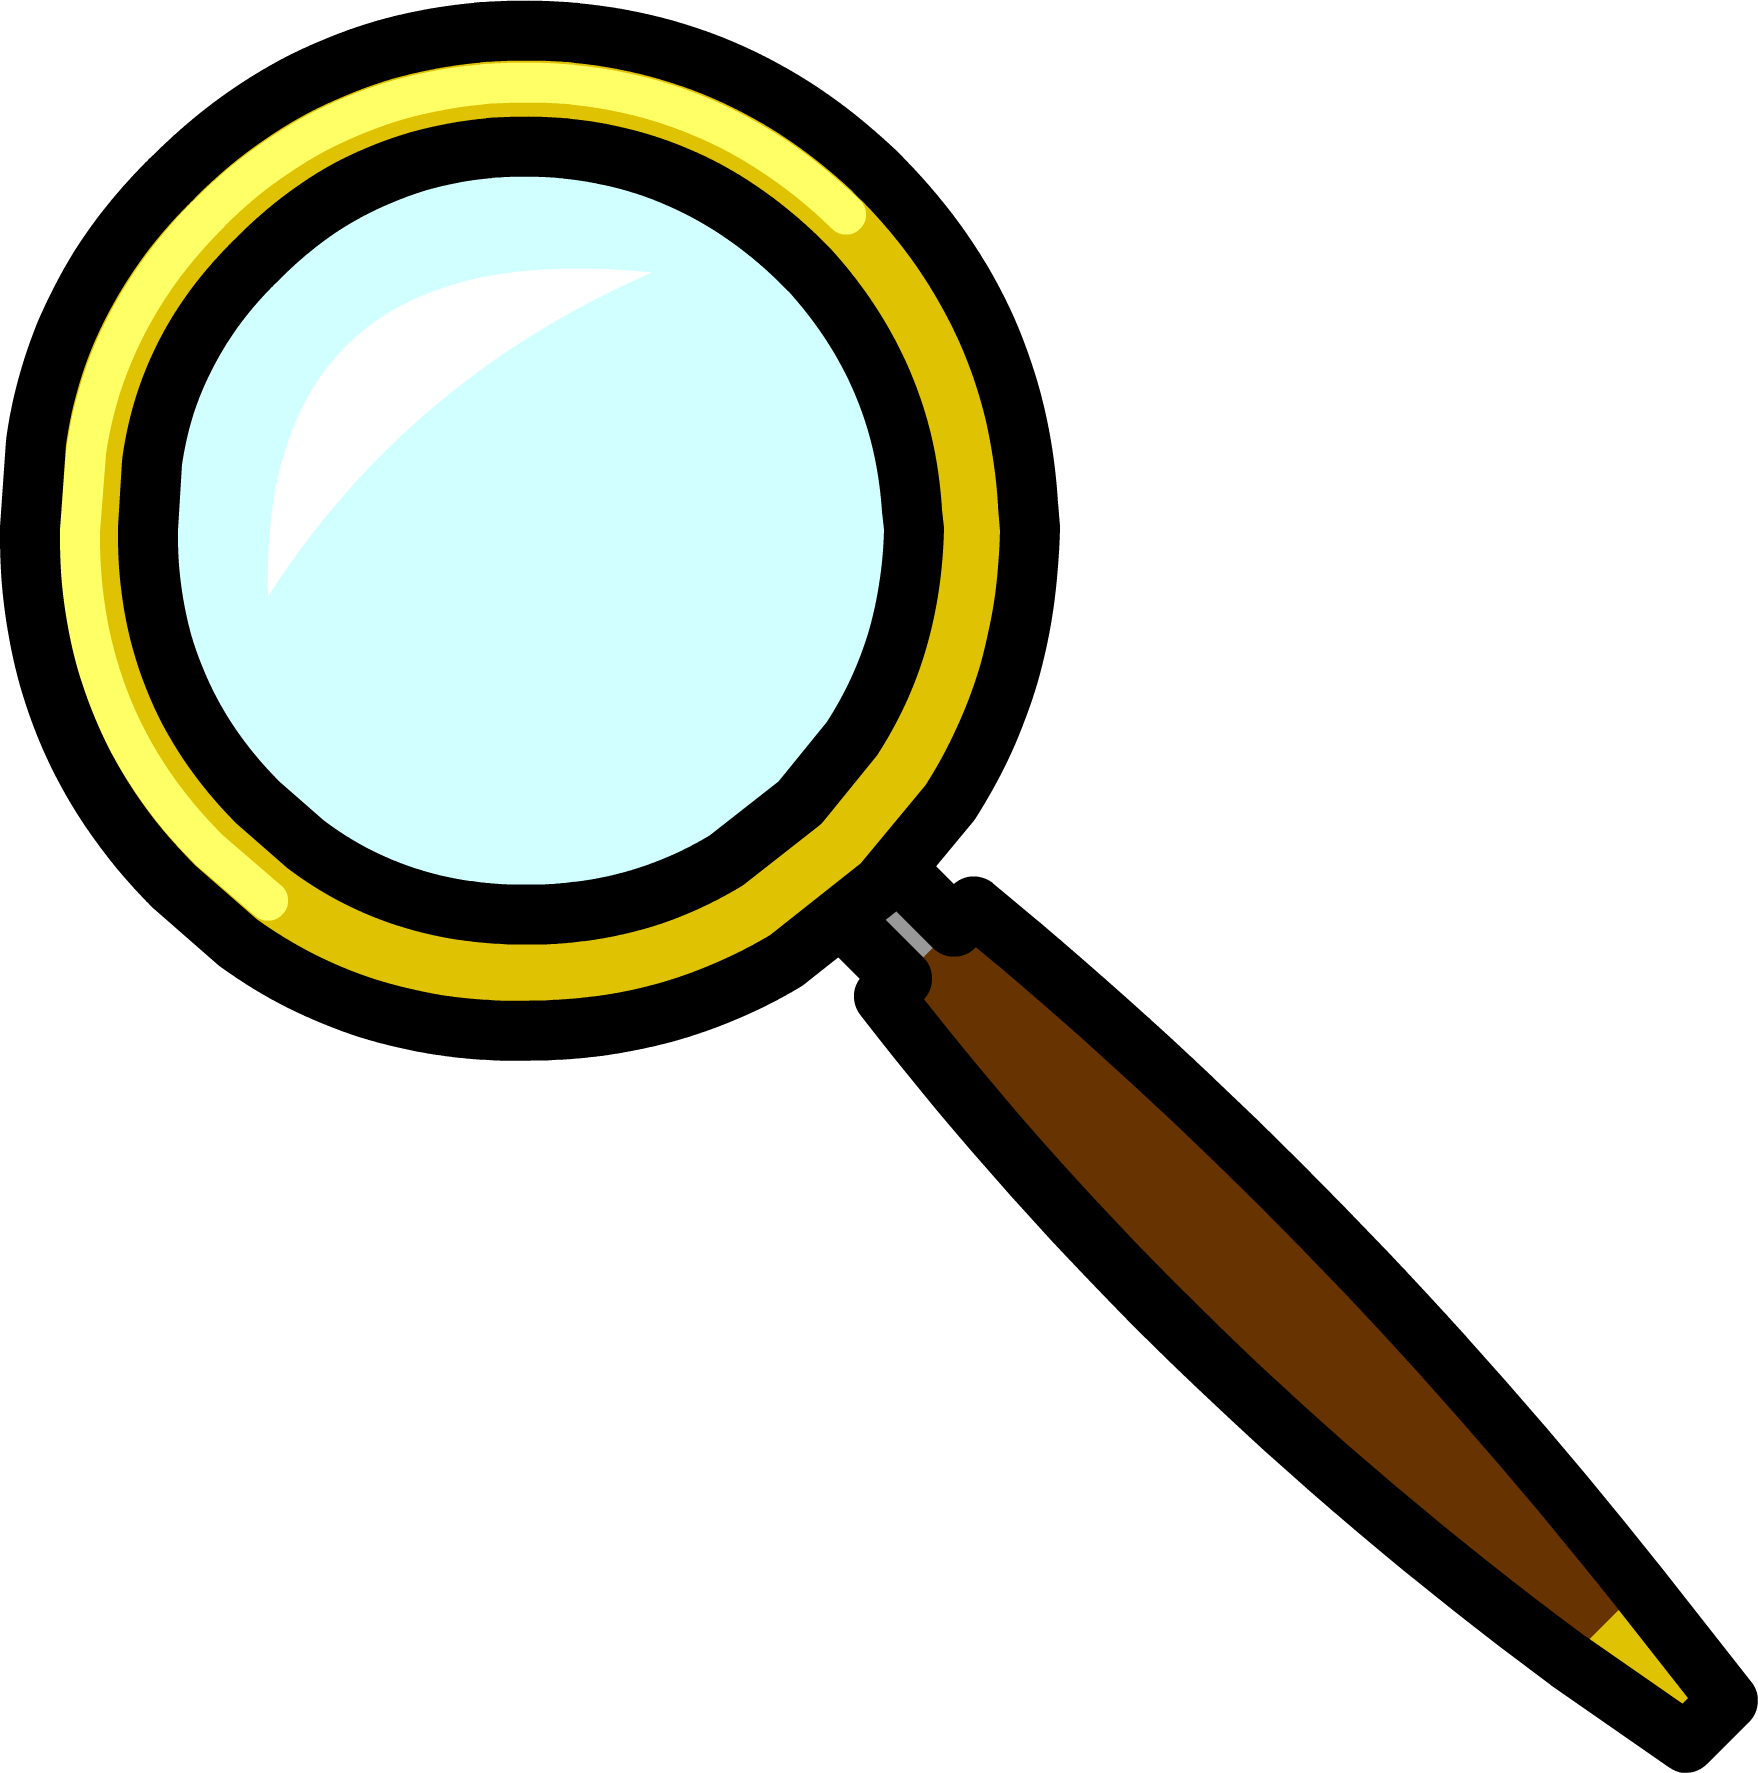 Experiment clipart magnifying glass. Image pin png club